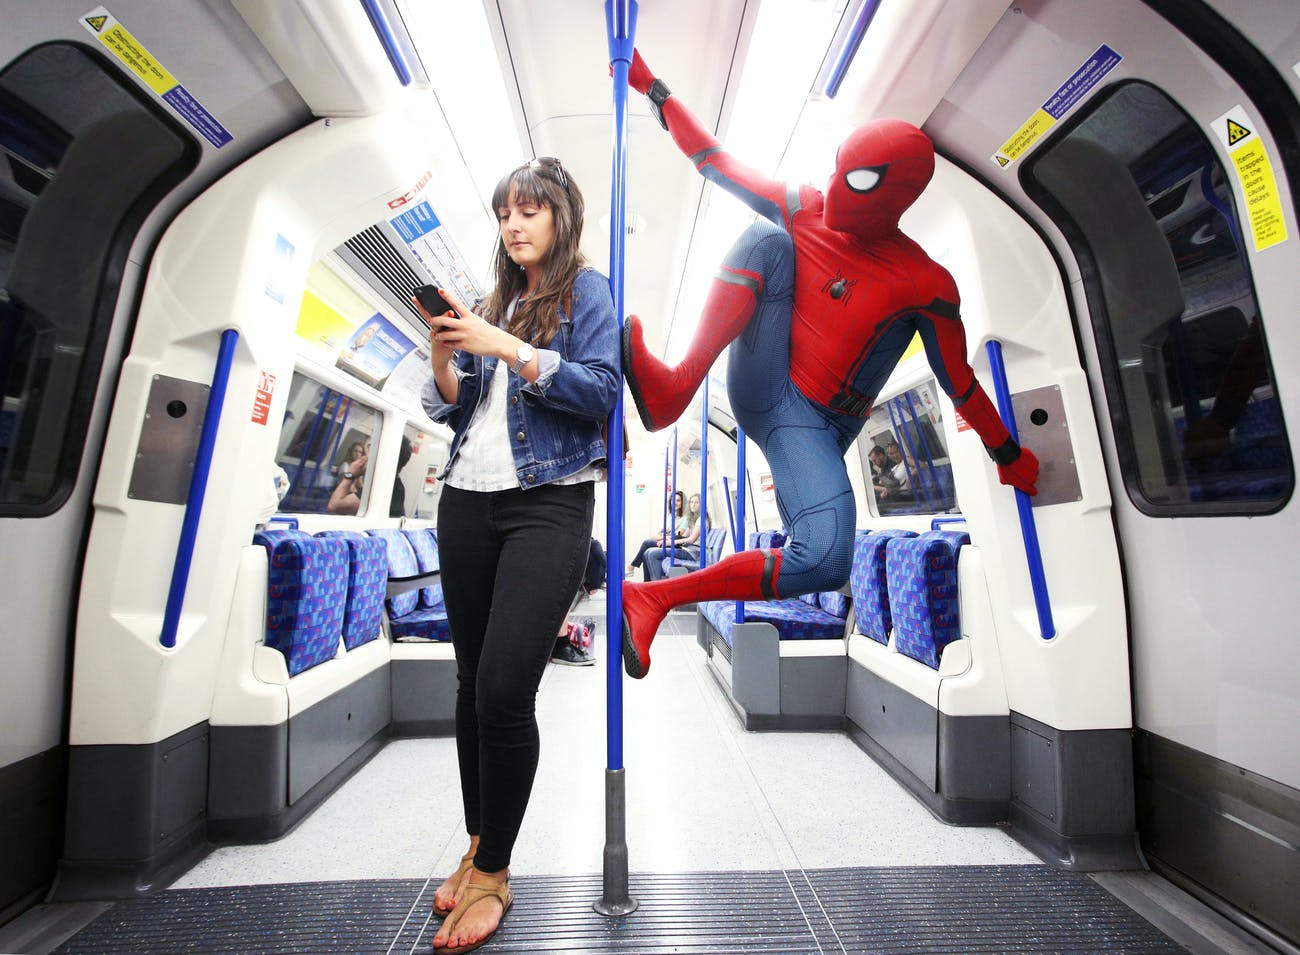 Spidey rides the tube, perhaps because there aren't enough tall buildings in London?